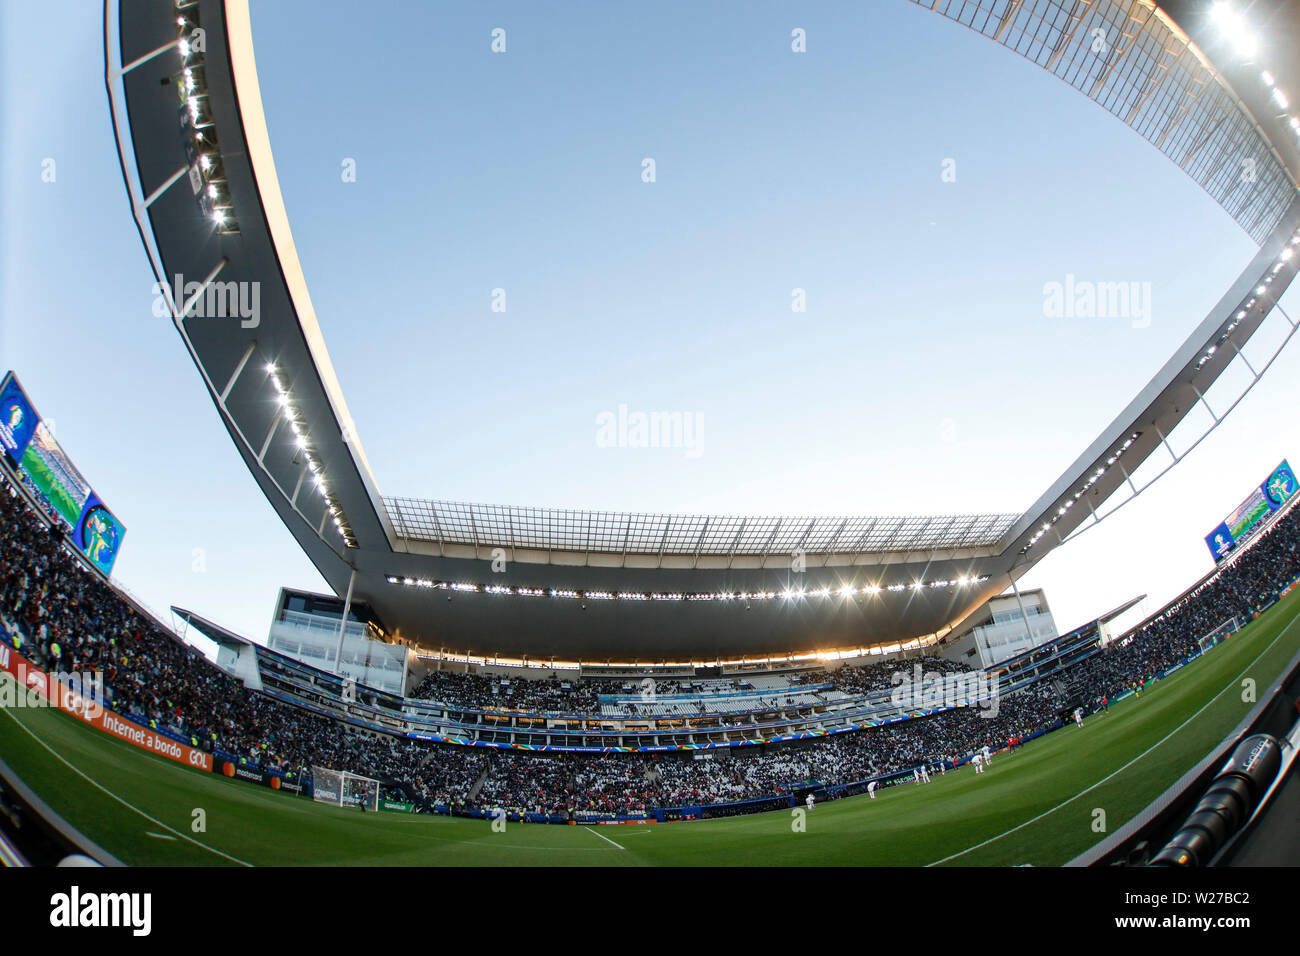 SÃO PAULO, SP - 06.07.2019: ARGENTINA VS. CHILE - Vision of Corinthians Arena during match between Argentina and Chile, valid for the dispute of the third place of Copa América 2019, held this Saturday (06) at the Corinthians Arena in São Paulo, SP. (Photo: Ricardo Moreira/Fotoarena) - Stock Image